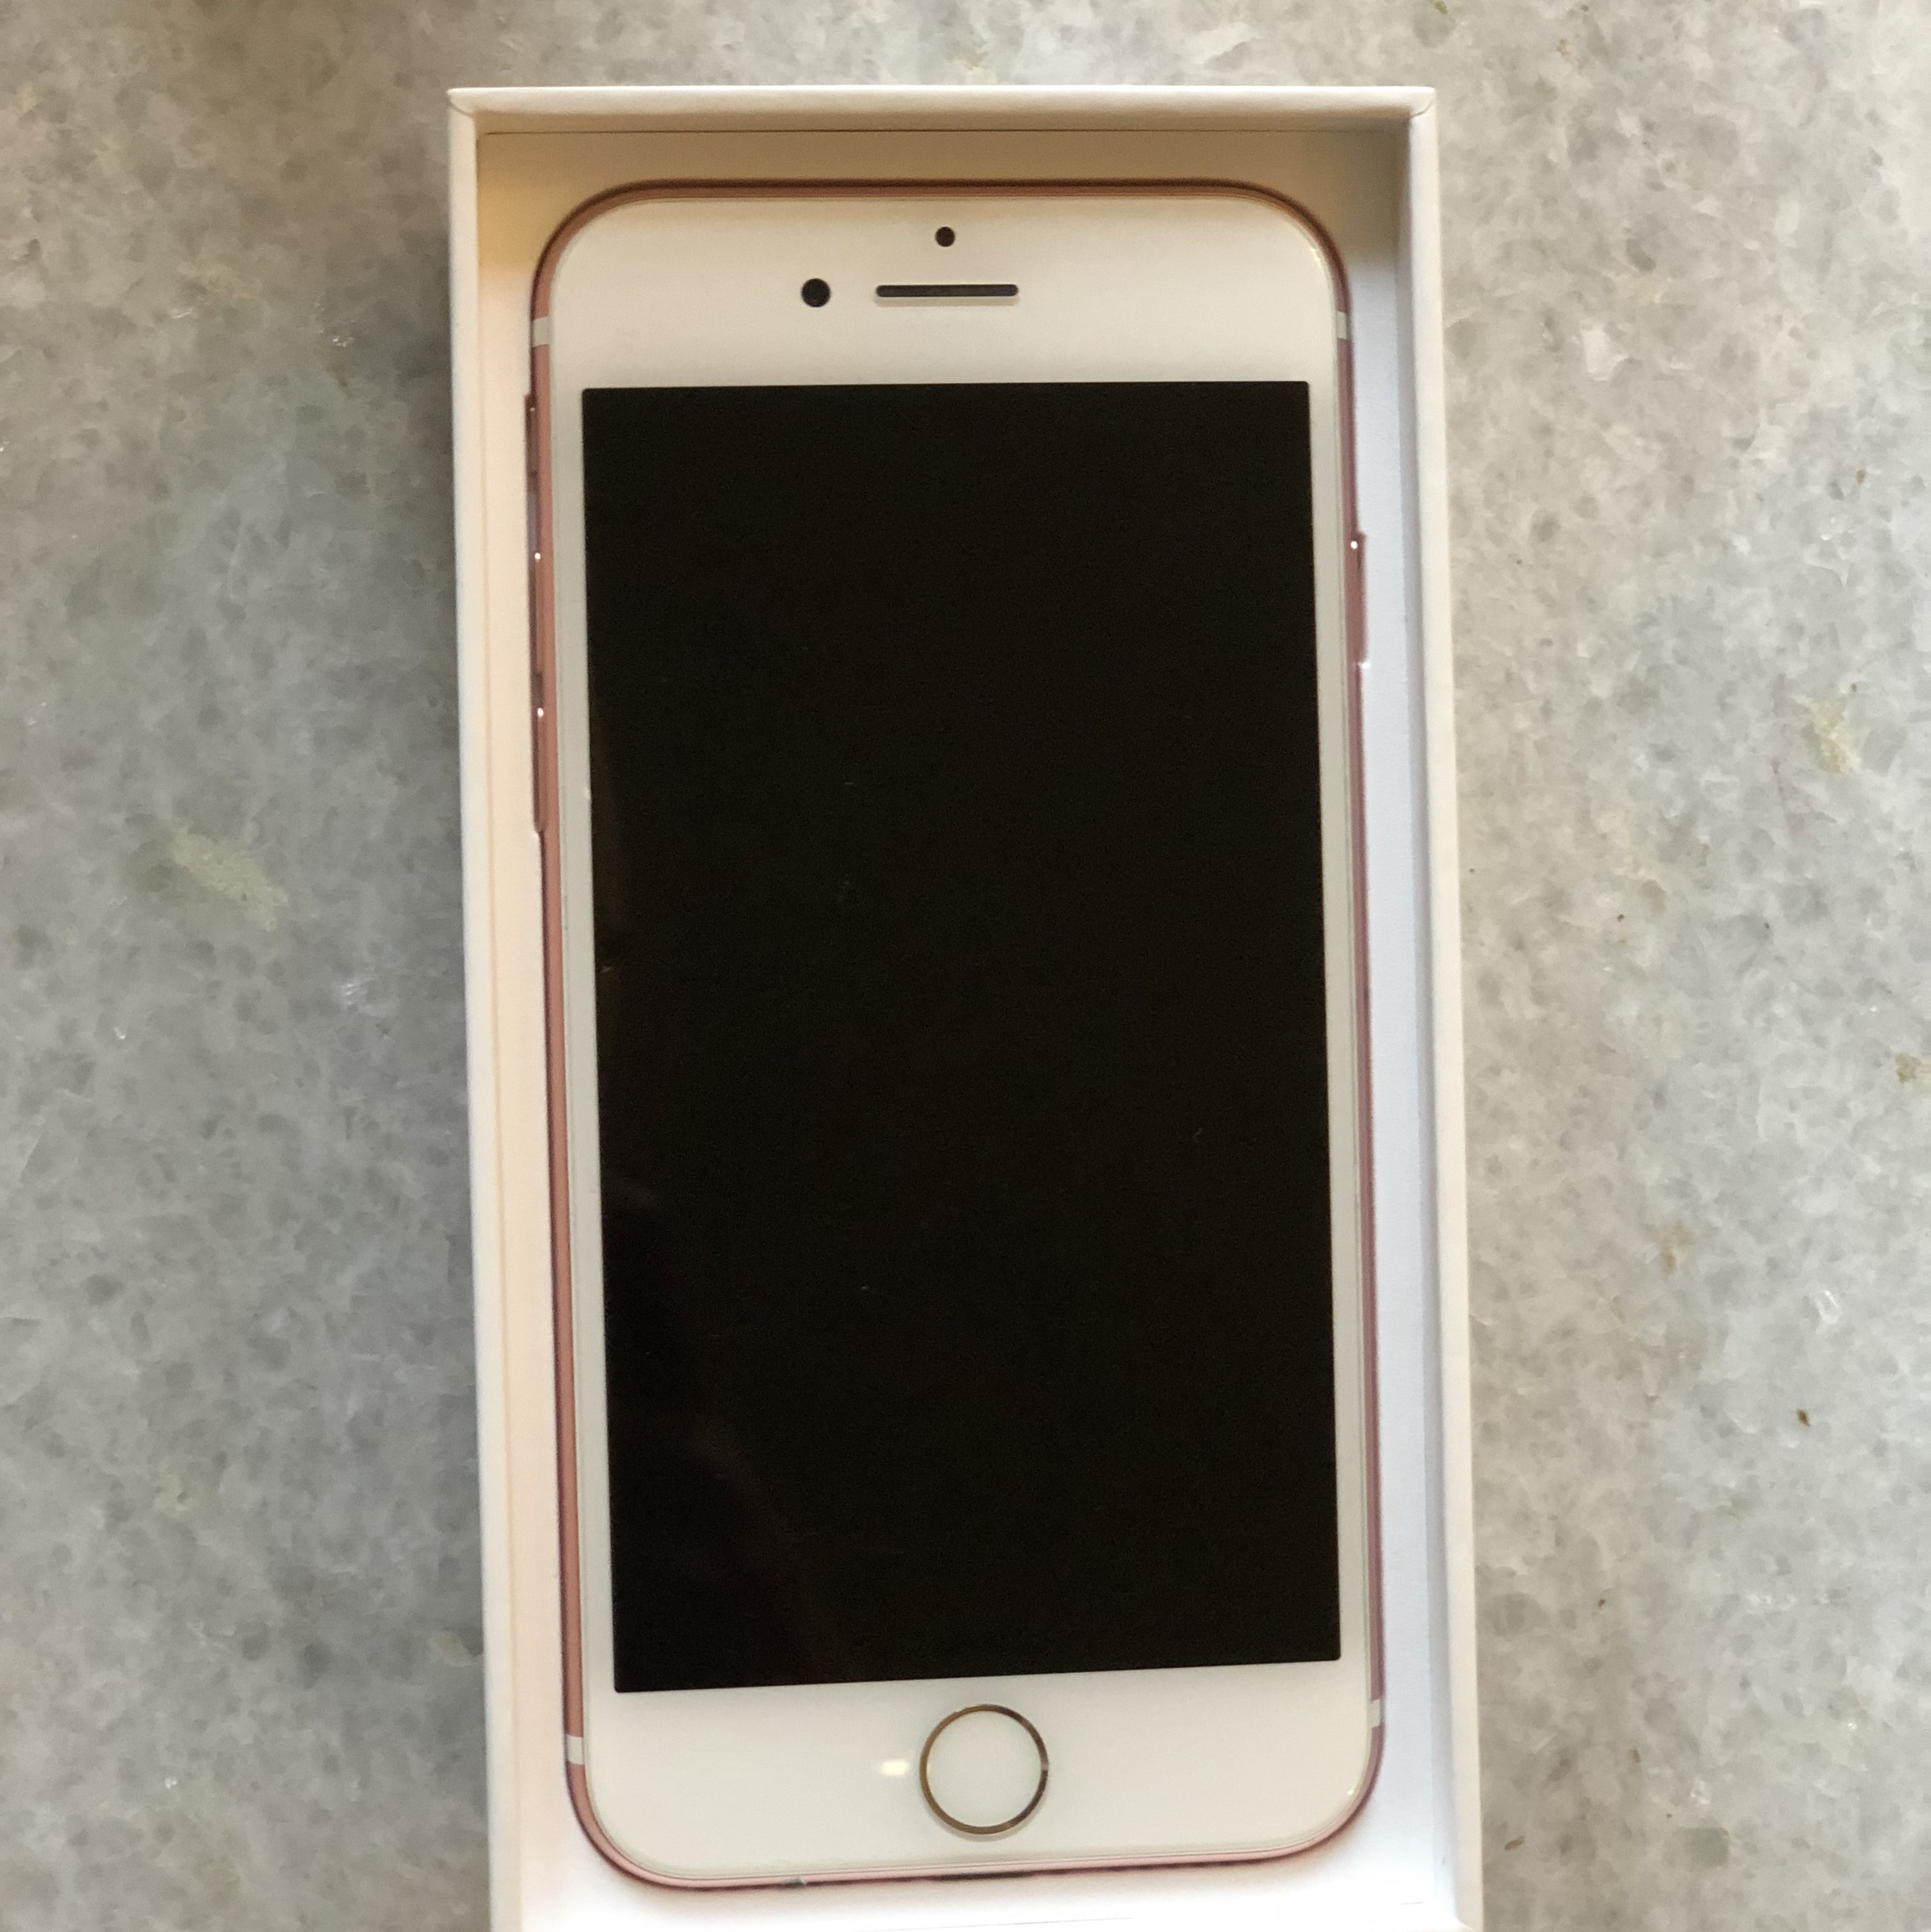 128GB Rose Gold iPhone 7 (unlocked) Small chip on    - Depop